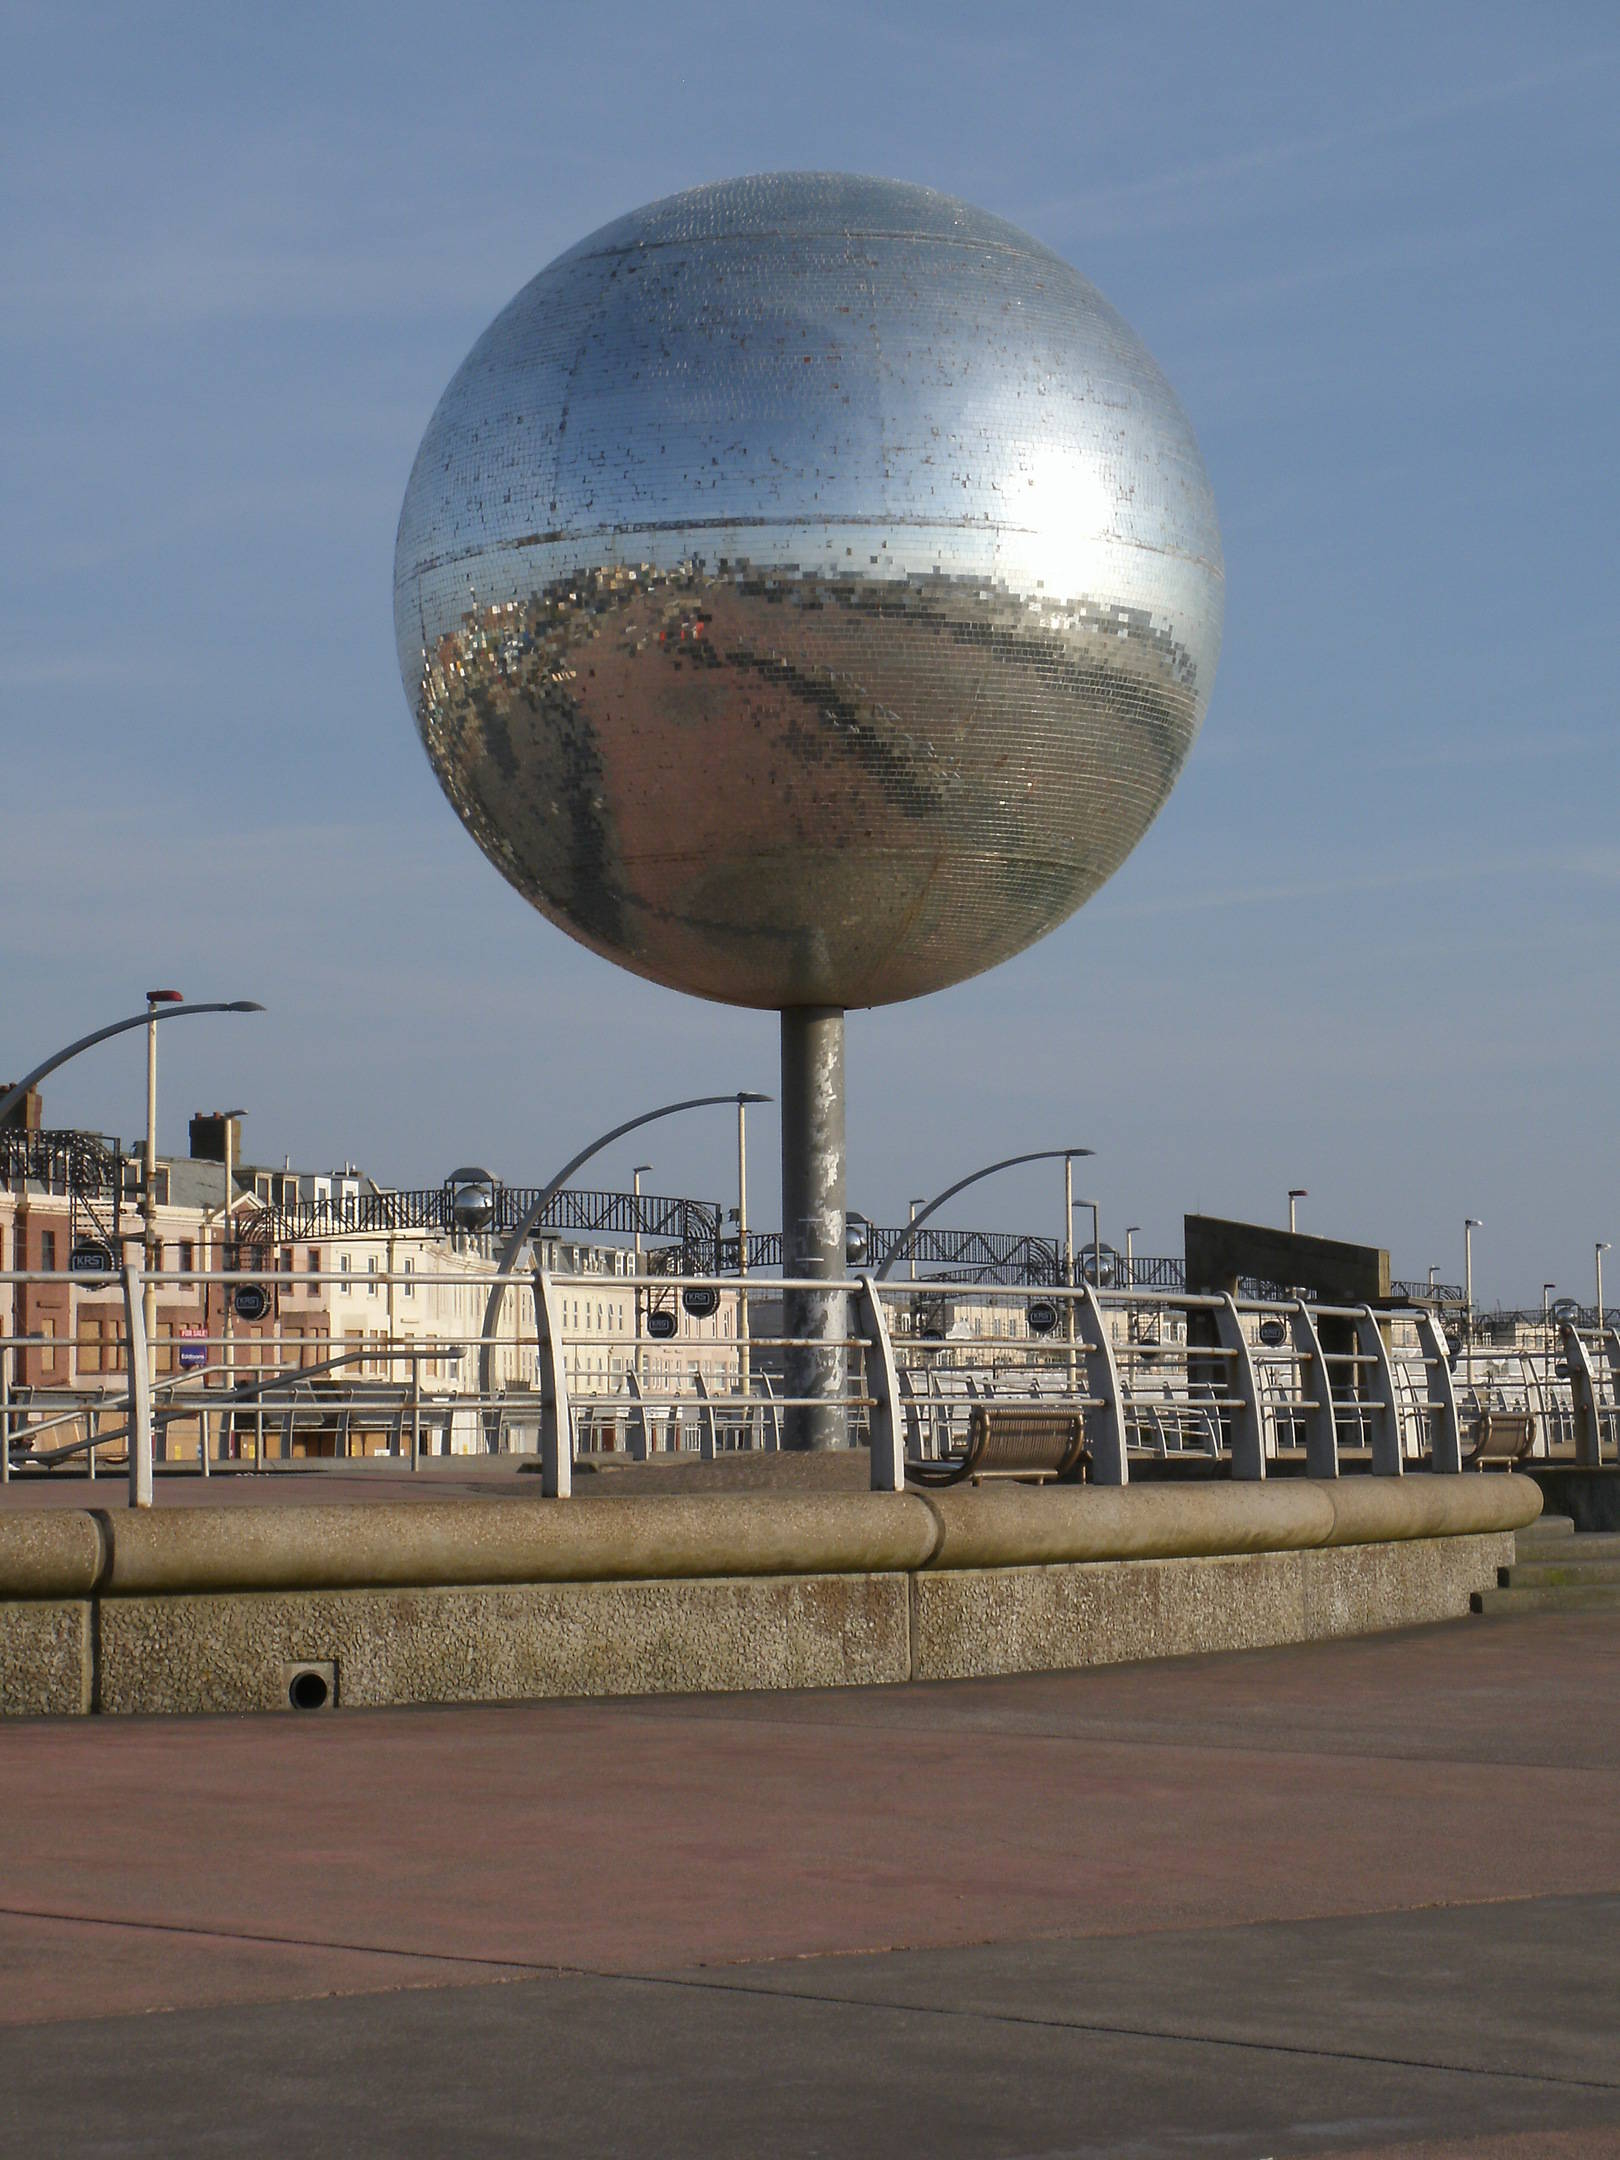 The Mirrorball Blackpool sea front. This is the splendid Mirrorball which brightens the sea front and is a pleasure to see especially on a bright sunlight day or a sunset.